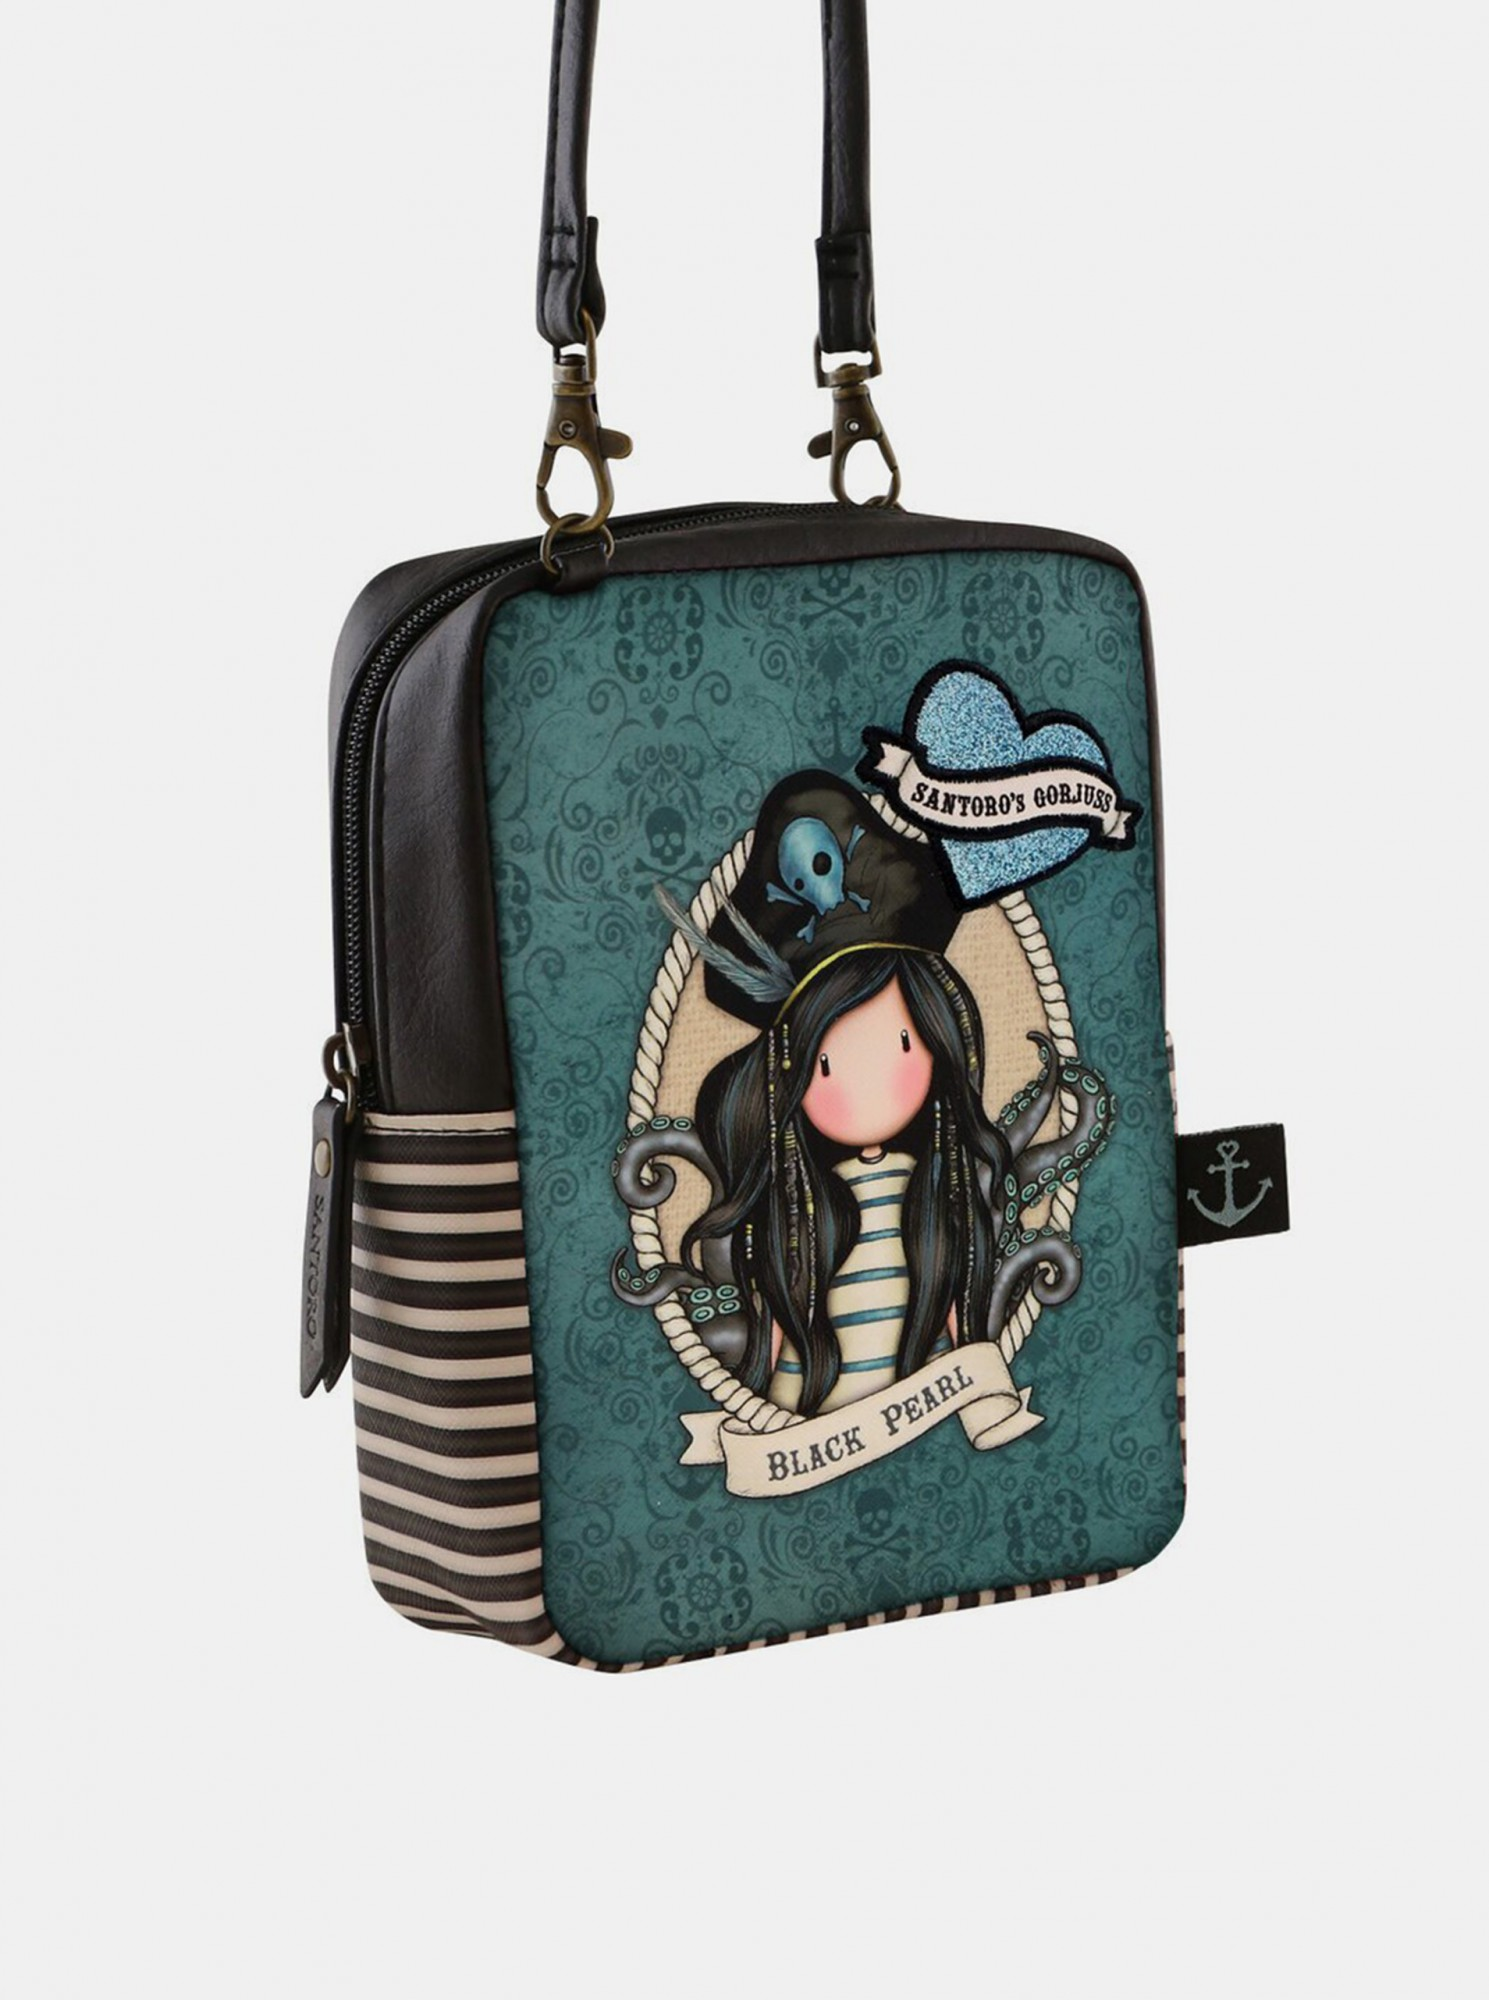 Santoro plava crossbody torbica Gorjuss Pirates Black Pearl